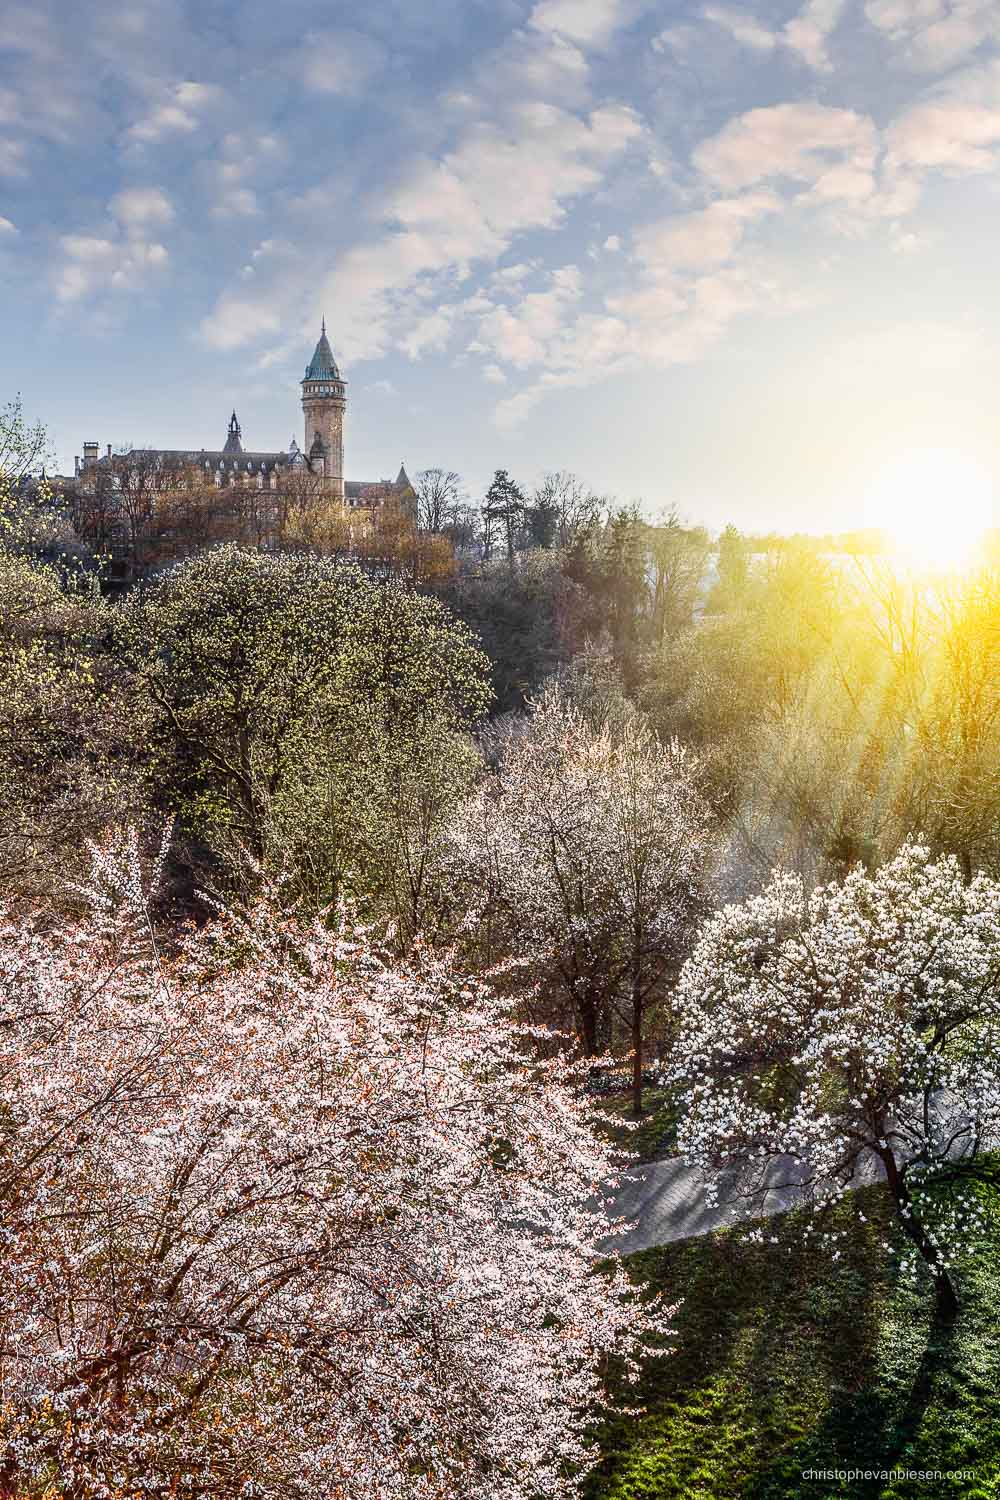 Spring in Luxembourg - The BCEE tower and the Petrusse valley during spring in Luxembourg City with trees in full bloom - City Reborn